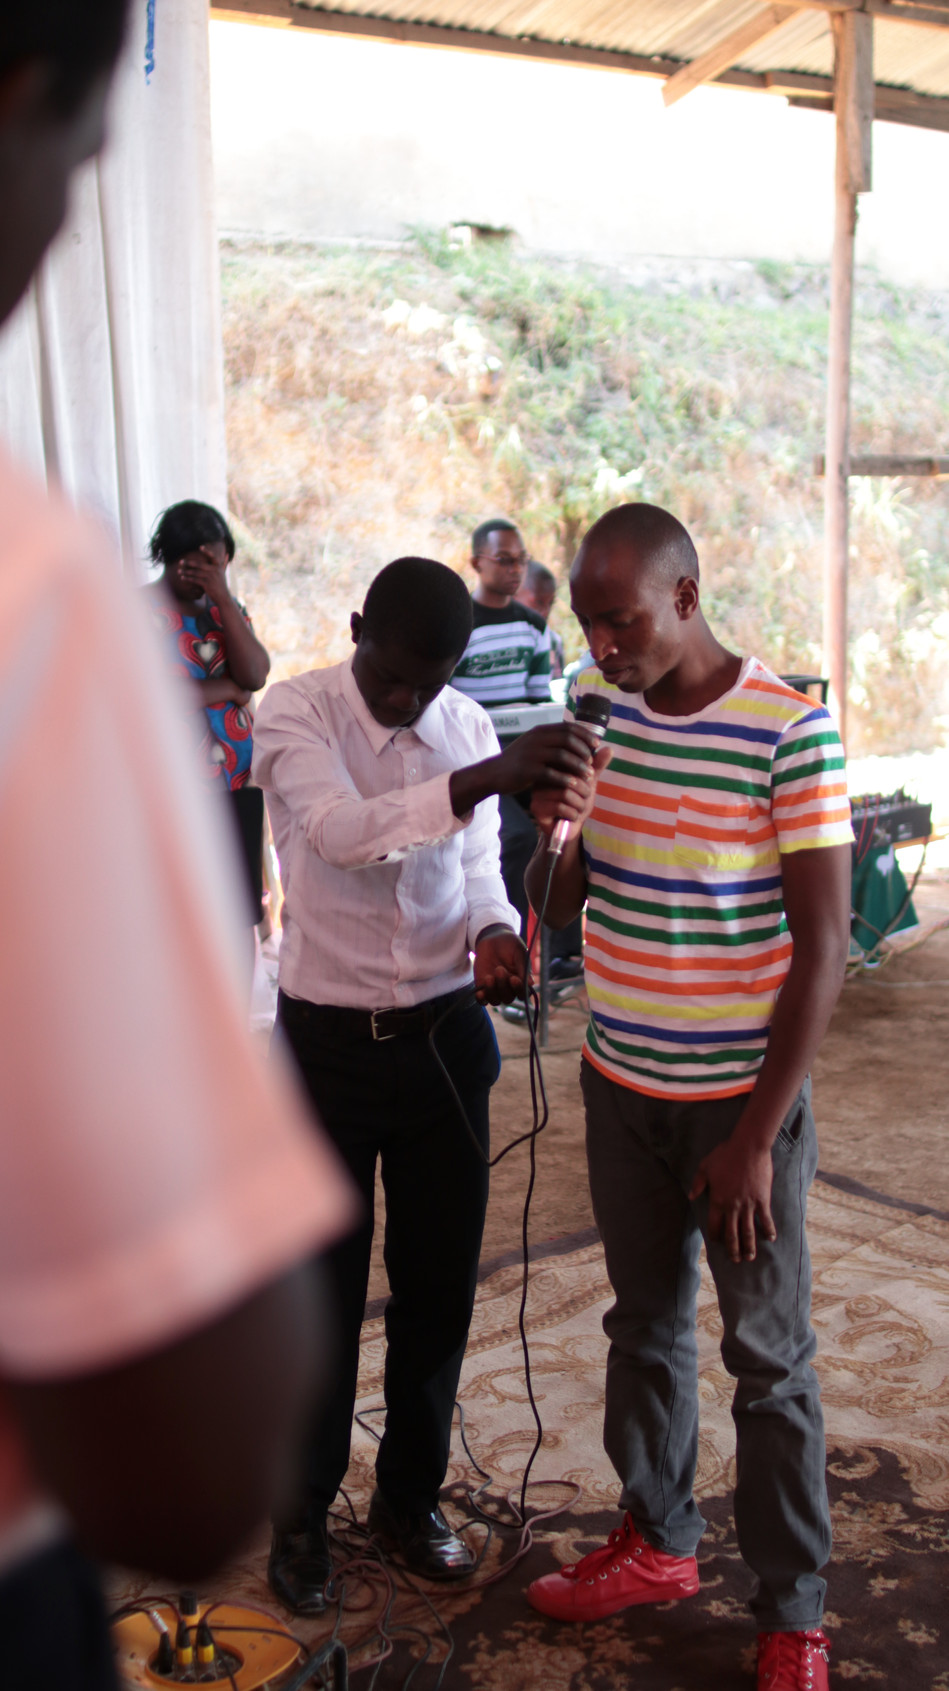 This man came to faith in Christ that morning and joined the church